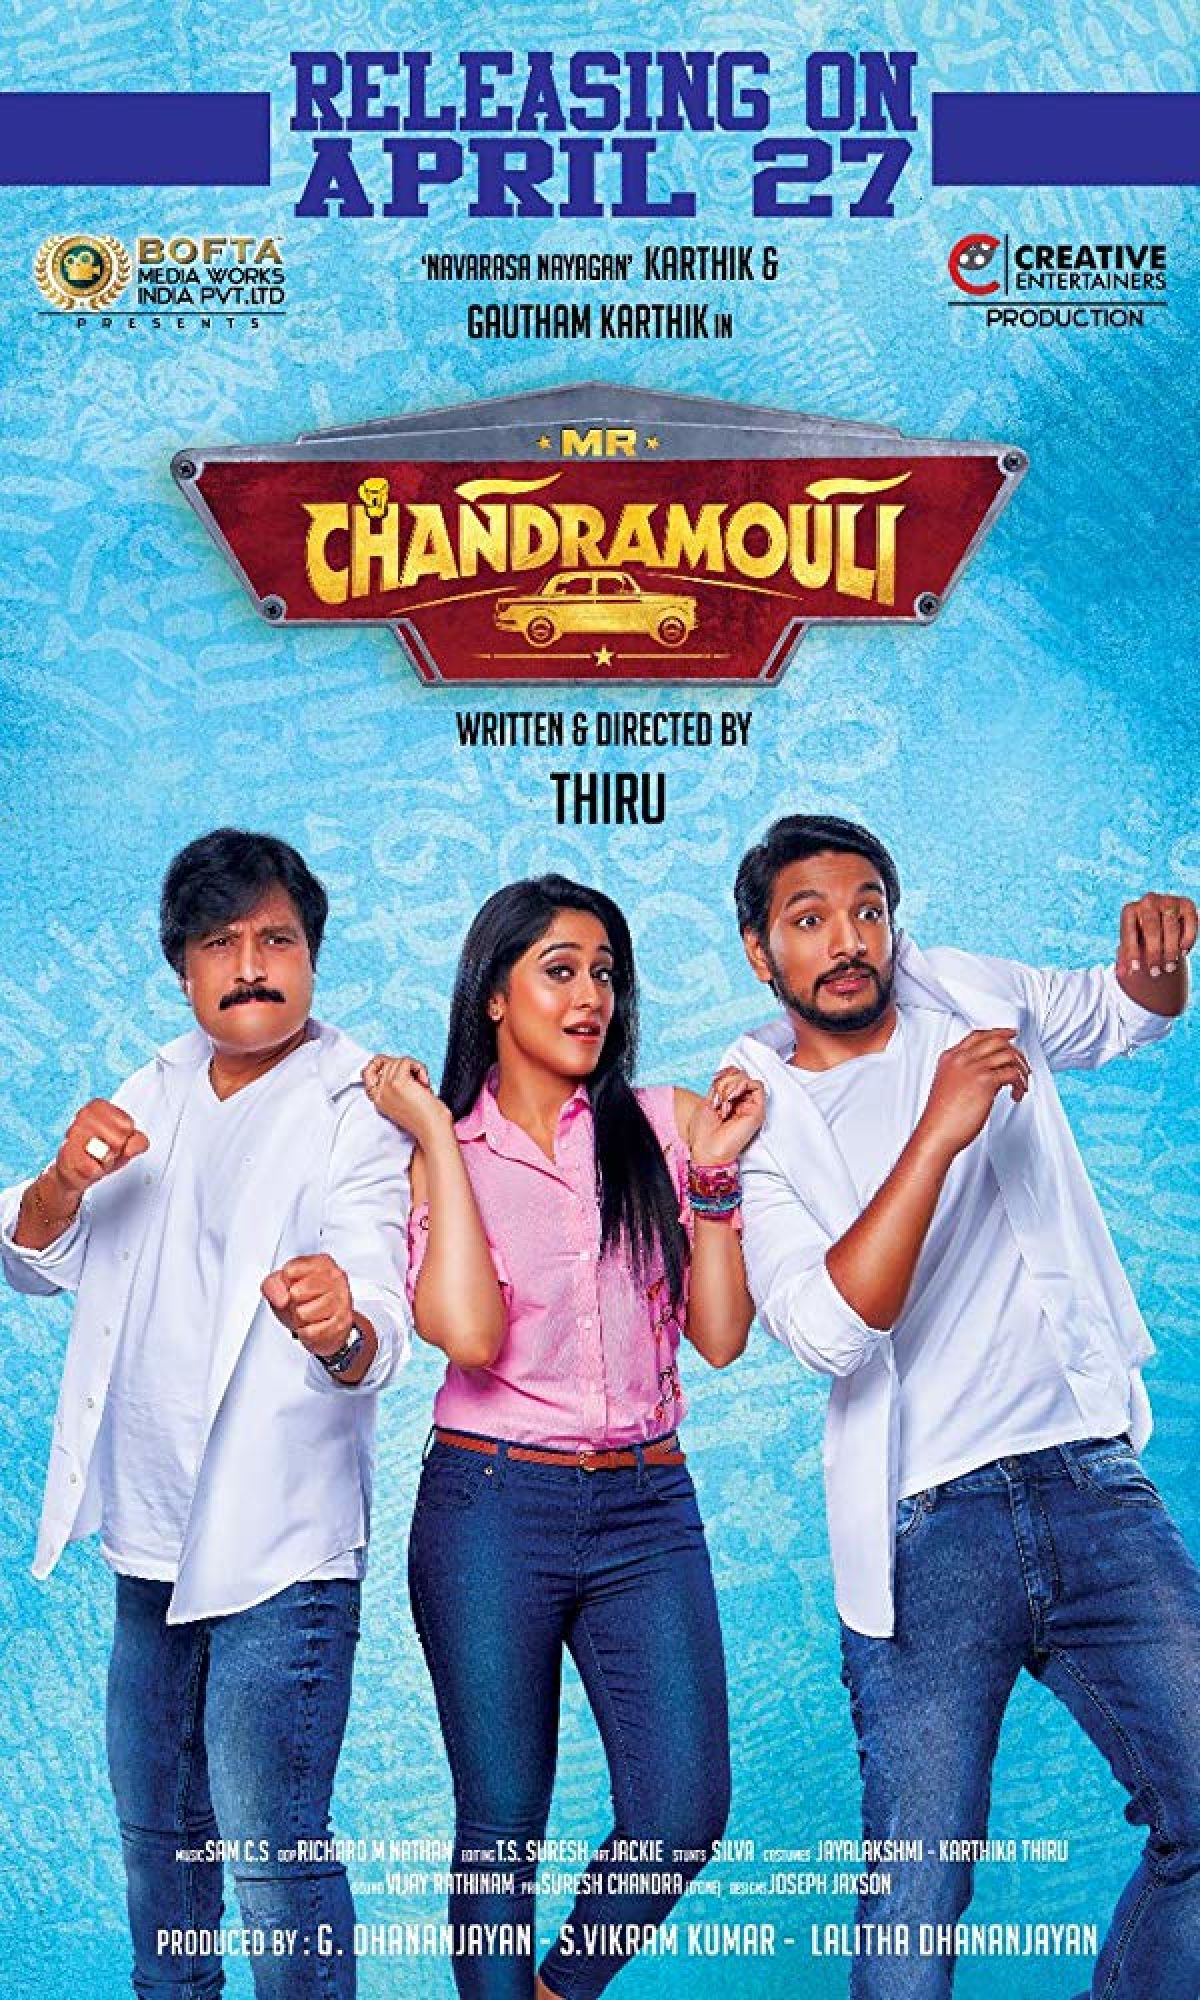 'Mr. Chandramouli' movie poster